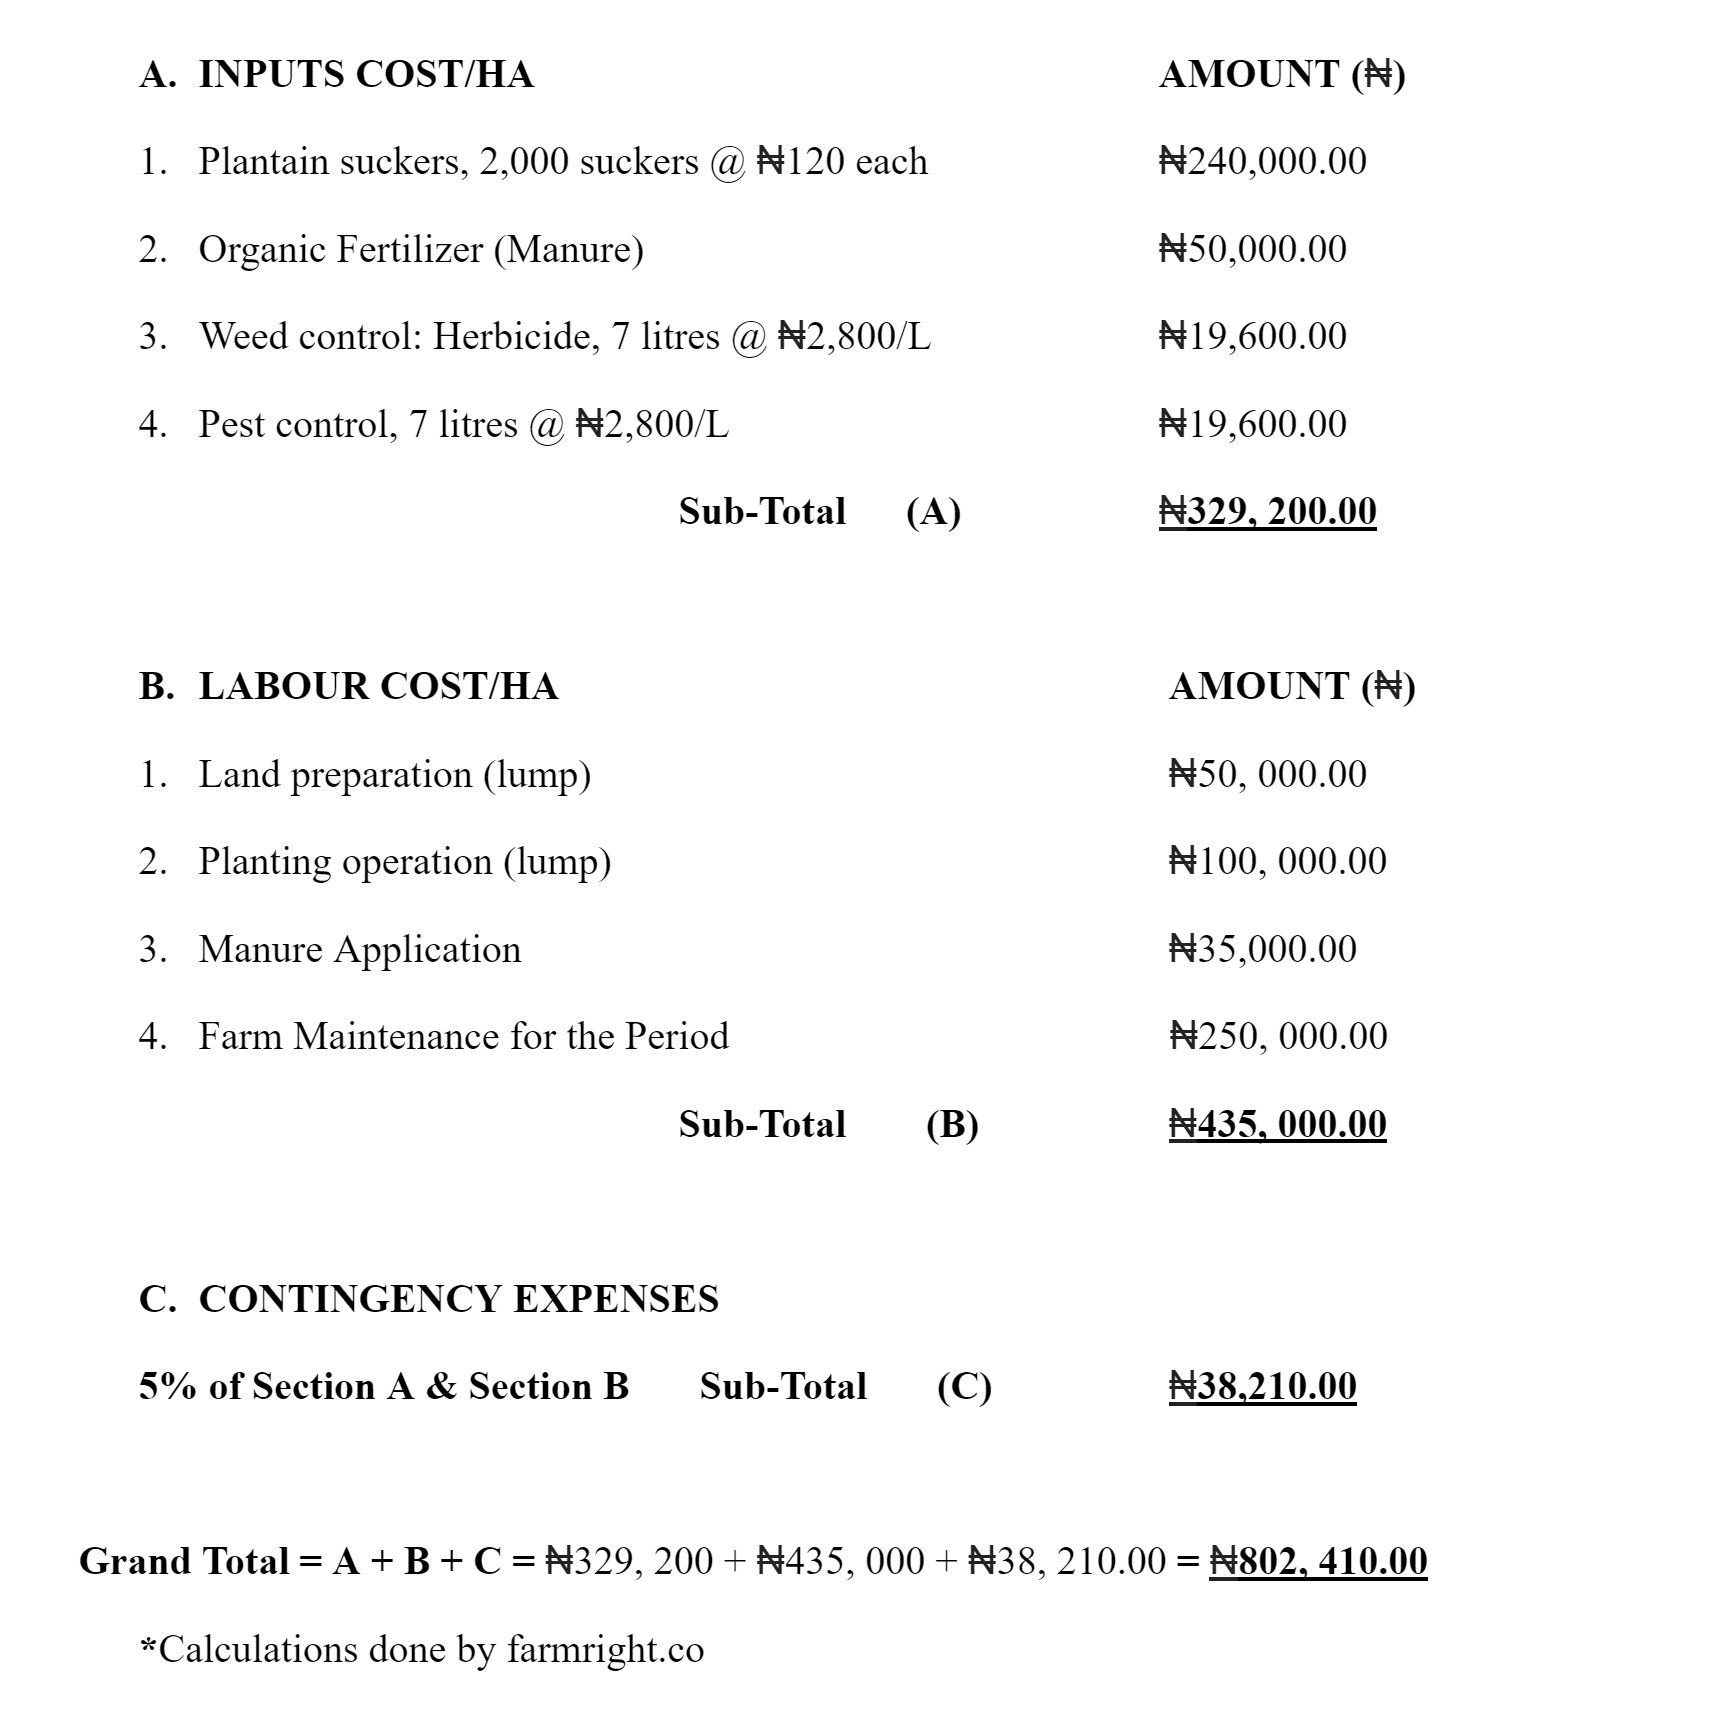 Cost implication of farming 1 hectare of plantain plantation with Farm Right